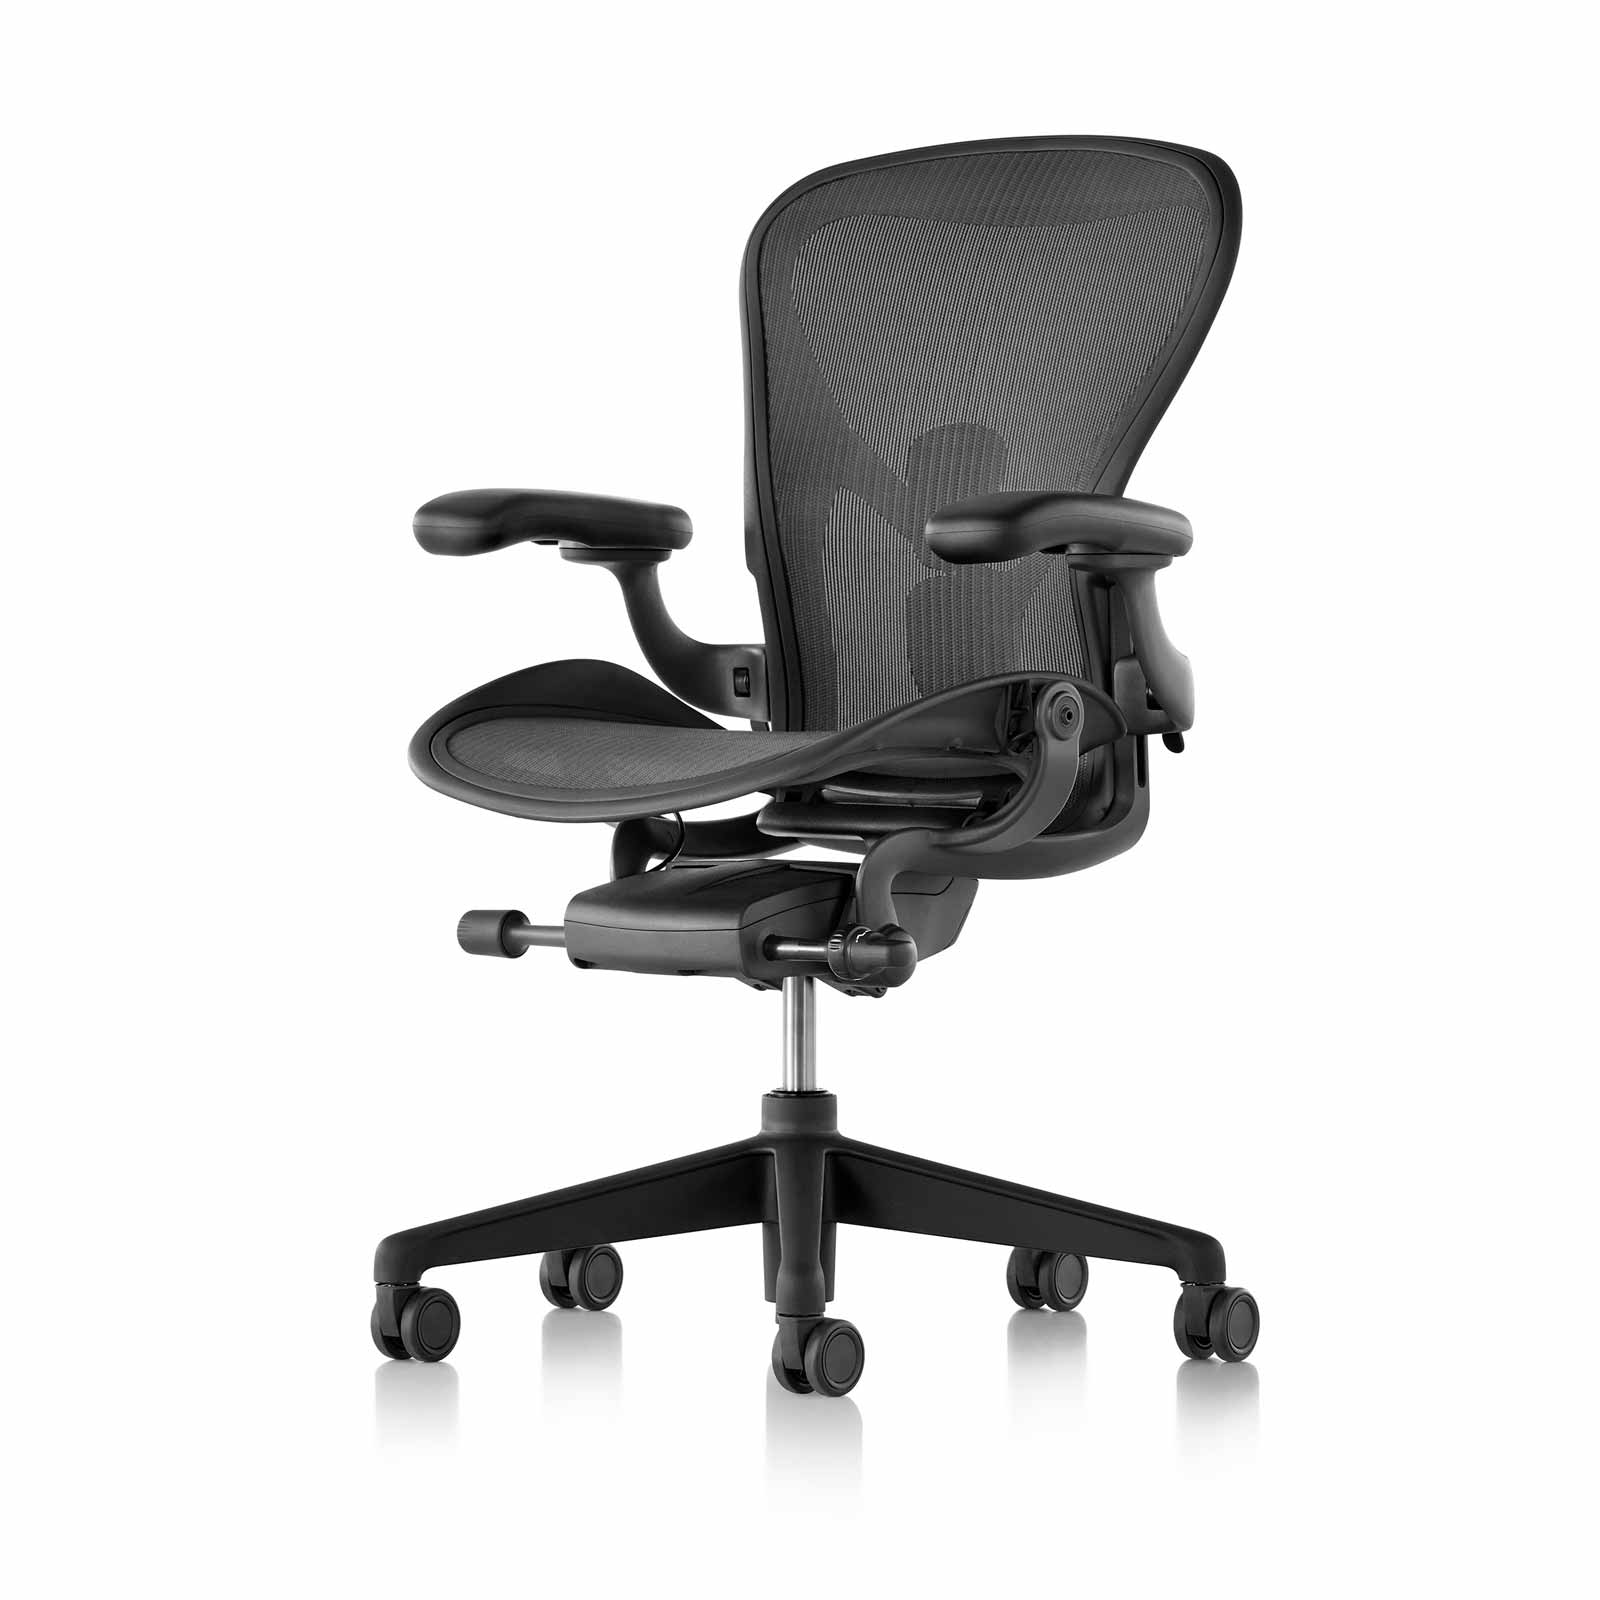 Fine Herman Miller Aeron Remastered New Aeron Chair Creativecarmelina Interior Chair Design Creativecarmelinacom